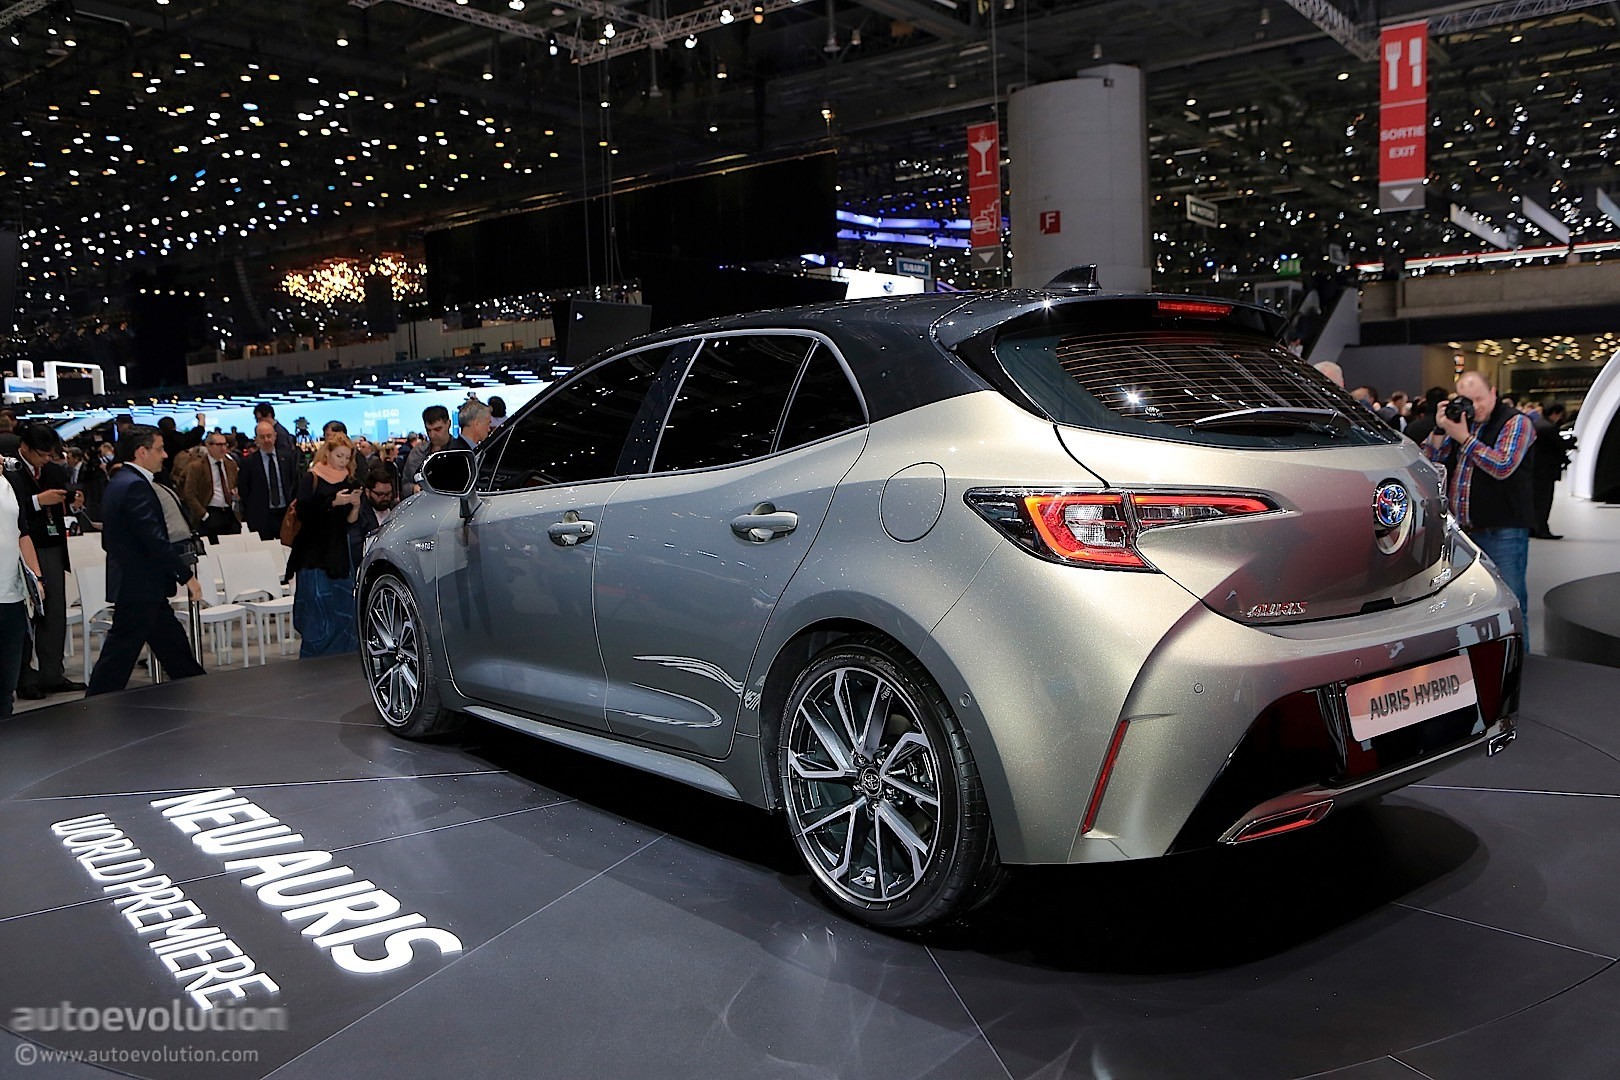 2019 Toyota Auris Shows Up In Style In Geneva To Stir The Compact